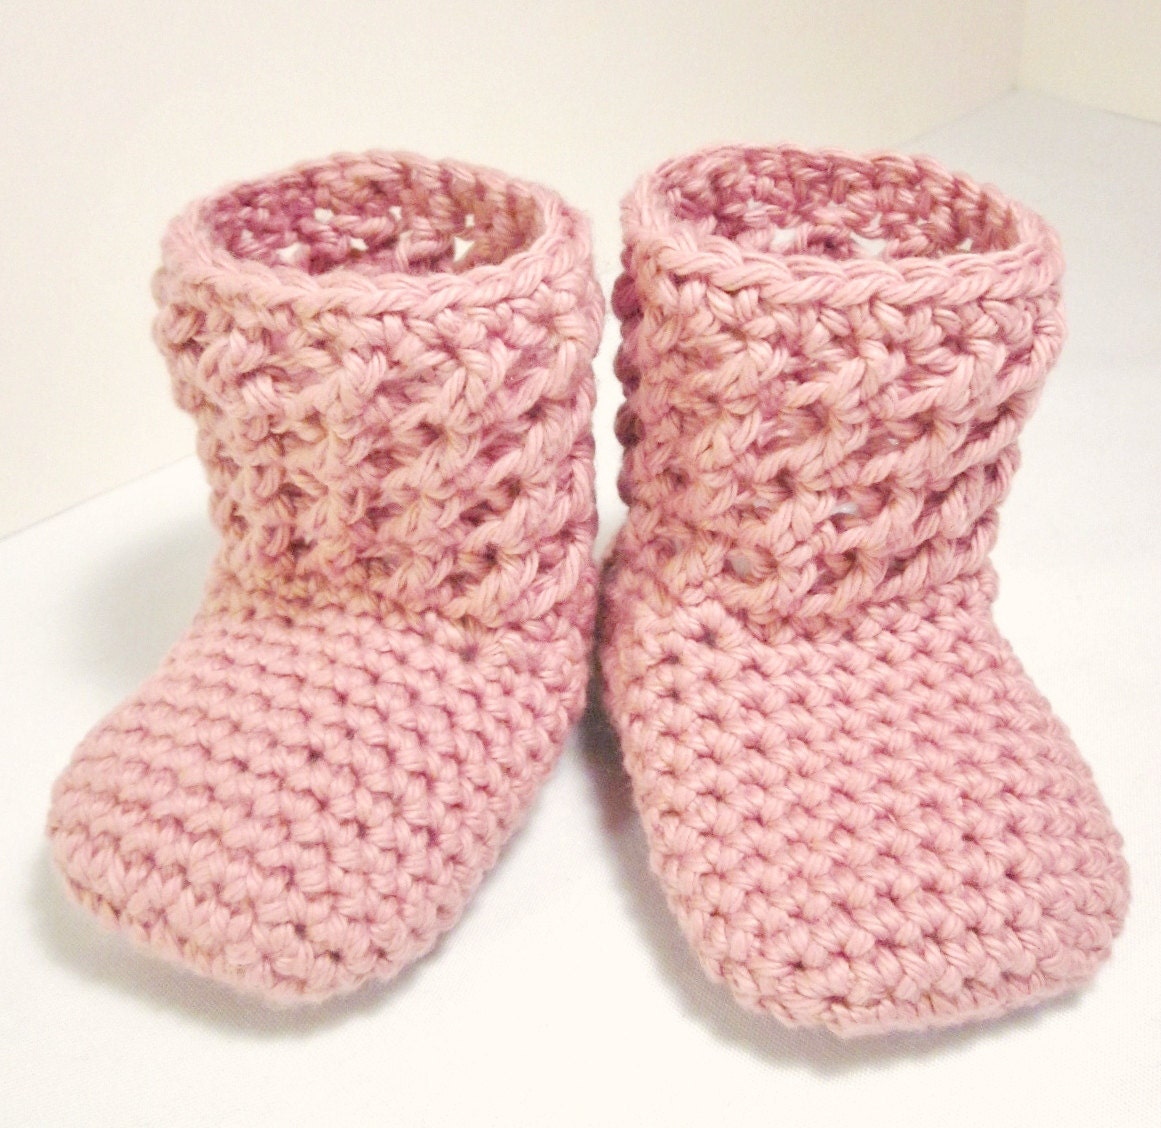 Crochet Pattern PDF Textured Booties Sizes by injenuity on ...